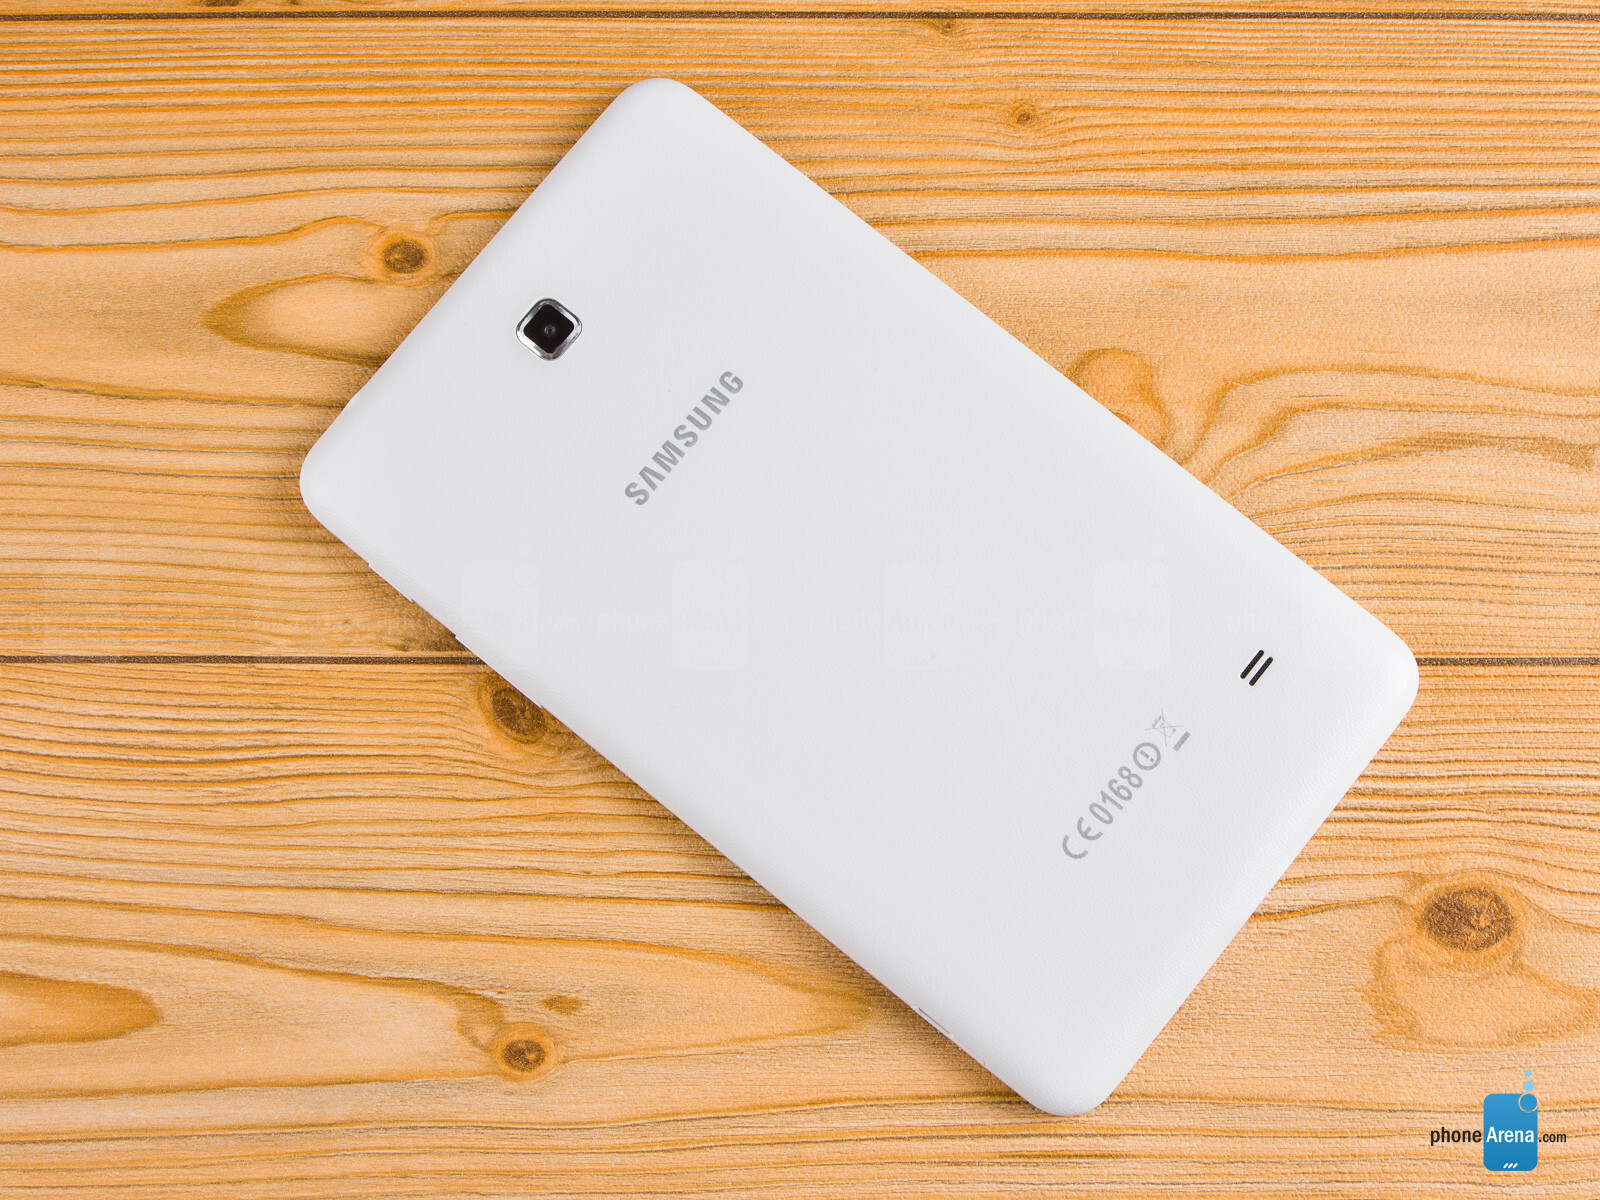 best cell phone with camera with Samsung Galaxy Tab 4 7 on Google Map Images That Are Interesting furthermore Did You Know Nokias Snake Is Not The Worlds First Mobile Game id85842 further Huawei P9 Review likewise Experiment 6 Line Following With Ir Sensors also Samsung Galaxy Tab 4 7.